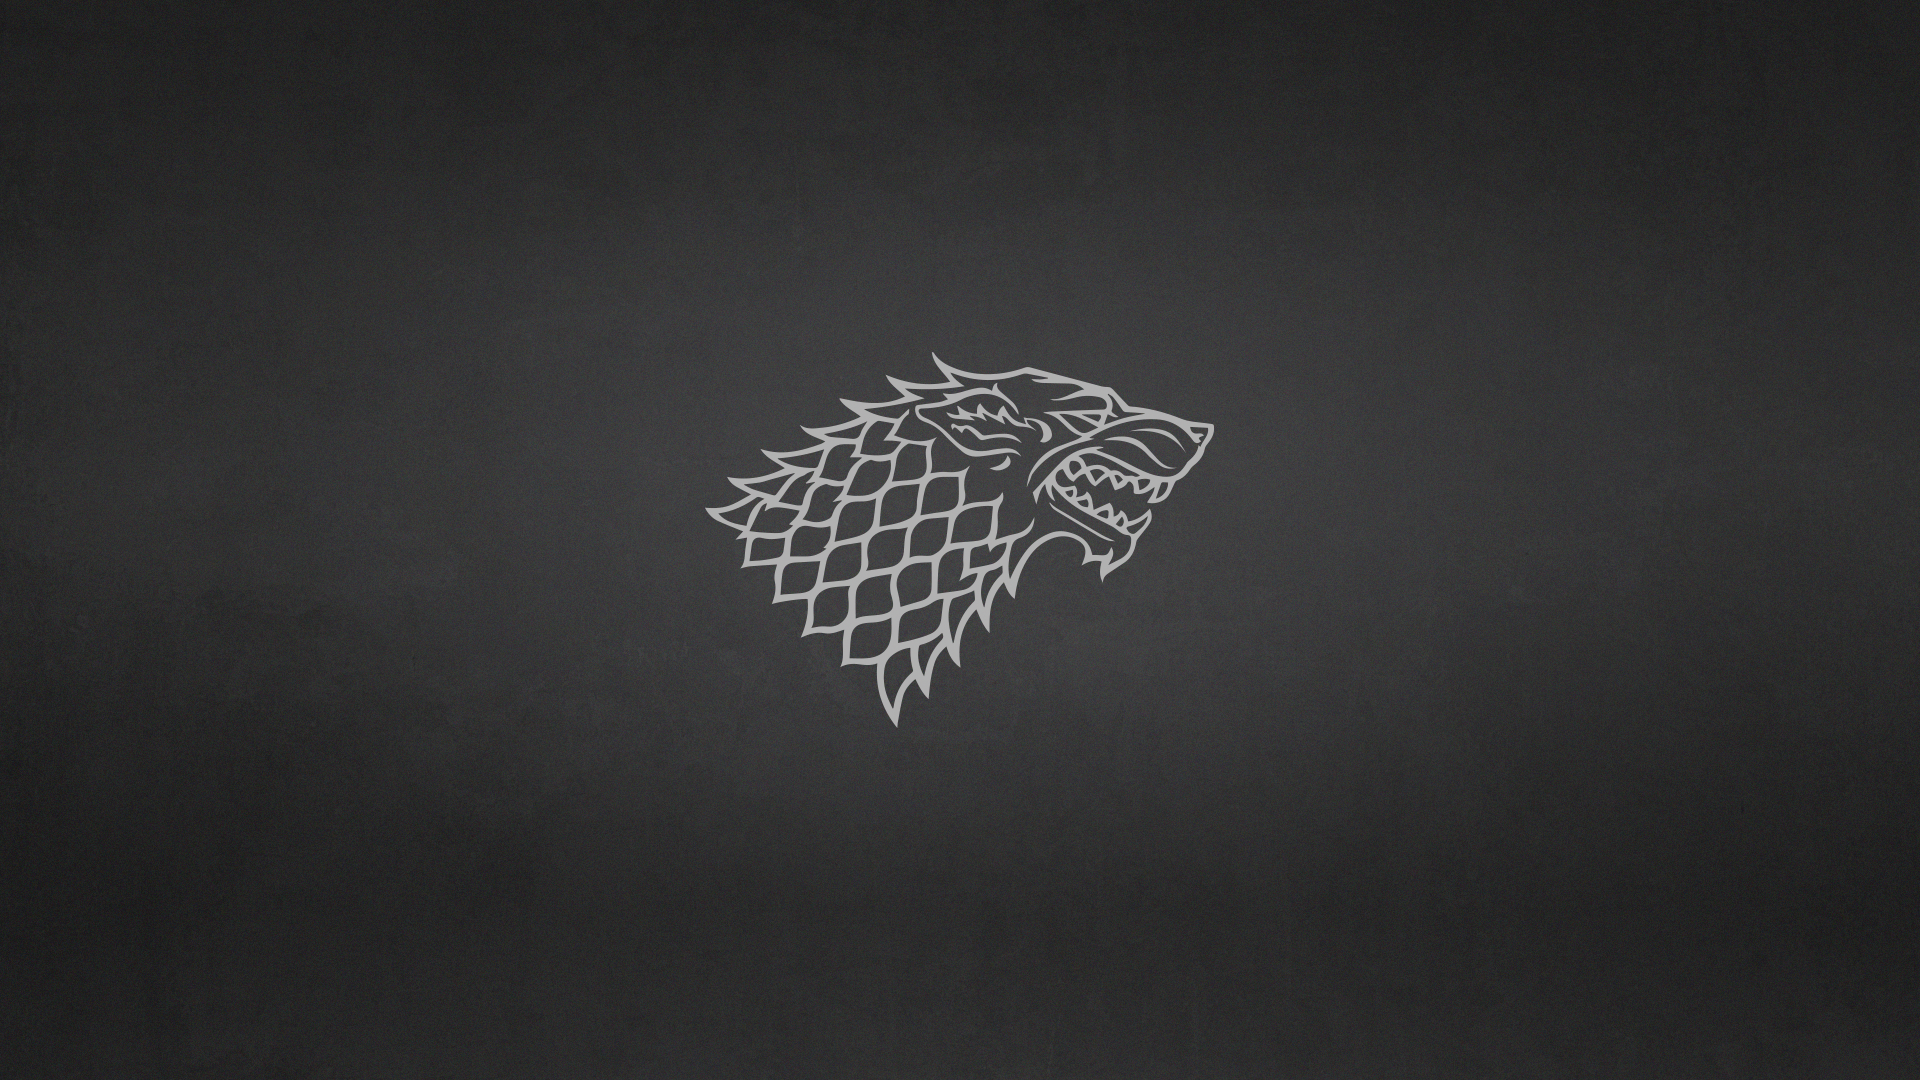 Free Download Pics Photos House Stark Game Of Thrones Wallpaper